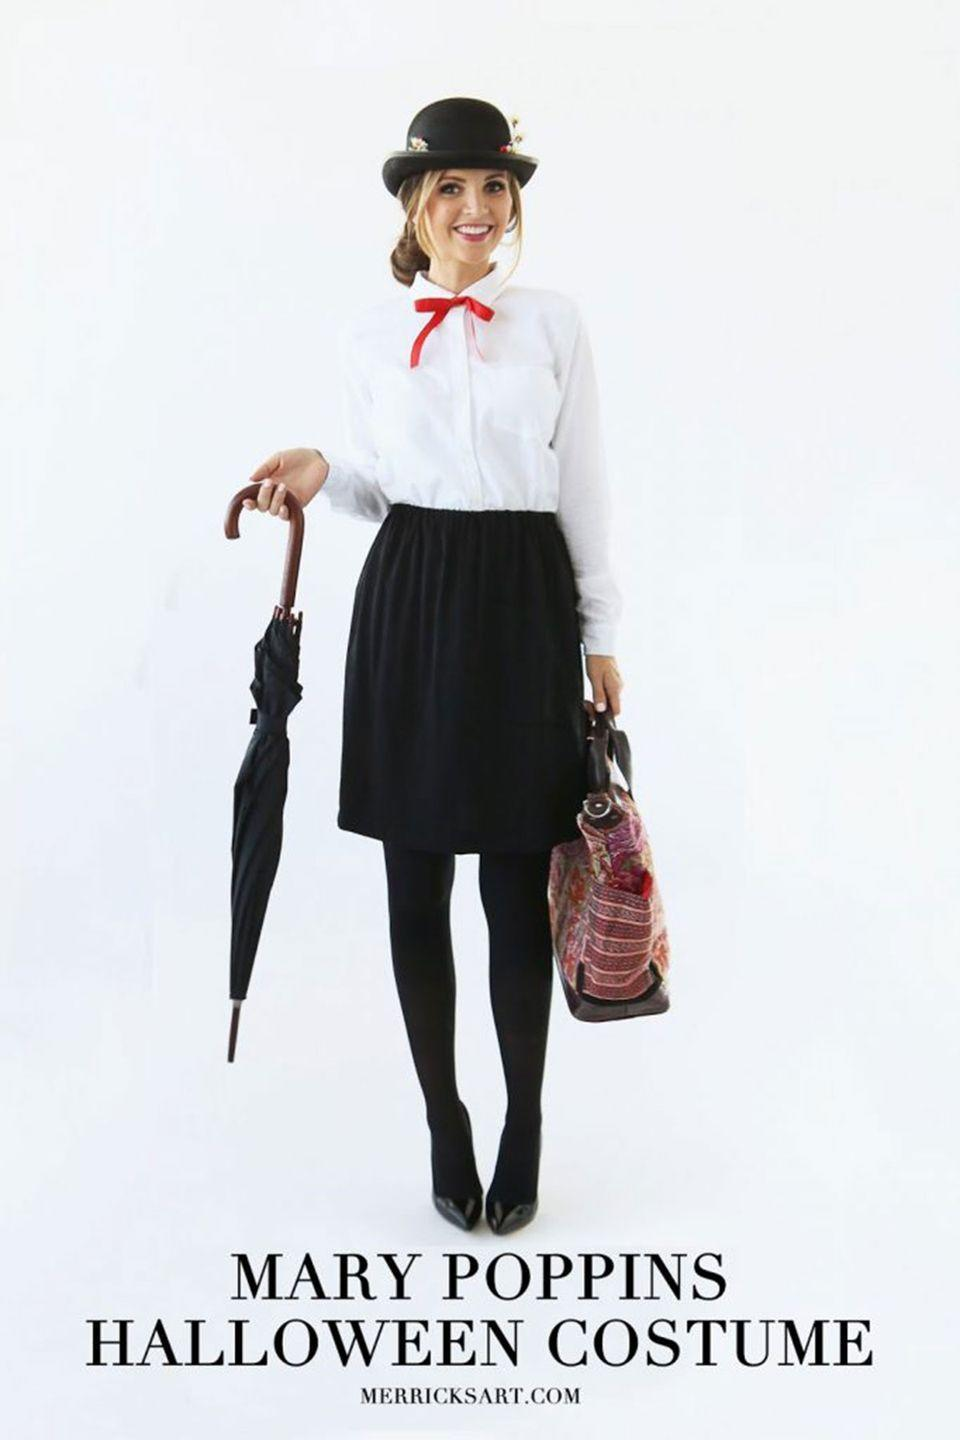 """<p>Pack your purse in the most delightful way—with candy, a flashlight, and any other Halloween essentials. You'll be just like the real Mary Poppins!</p><p><strong>Get the tutorial at <a href=""""http://www.merricksart.com/2015/10/modern-girls-halloween-week-mary.html"""" rel=""""nofollow noopener"""" target=""""_blank"""" data-ylk=""""slk:Merrick's Art"""" class=""""link rapid-noclick-resp"""">Merrick's Art</a>. </strong></p><p><strong><a class=""""link rapid-noclick-resp"""" href=""""https://www.amazon.com/Deluxe-Costume-Funny-Party-Hats/dp/B00CQNZN7E/ref=sr_1_7?dchild=1&keywords=bowler+hat&qid=1624891729&sr=8-7&tag=syn-yahoo-20&ascsubtag=%5Bartid%7C10050.g.4571%5Bsrc%7Cyahoo-us"""" rel=""""nofollow noopener"""" target=""""_blank"""" data-ylk=""""slk:SHOP BOWLER HATS"""">SHOP BOWLER HATS</a><br></strong></p>"""